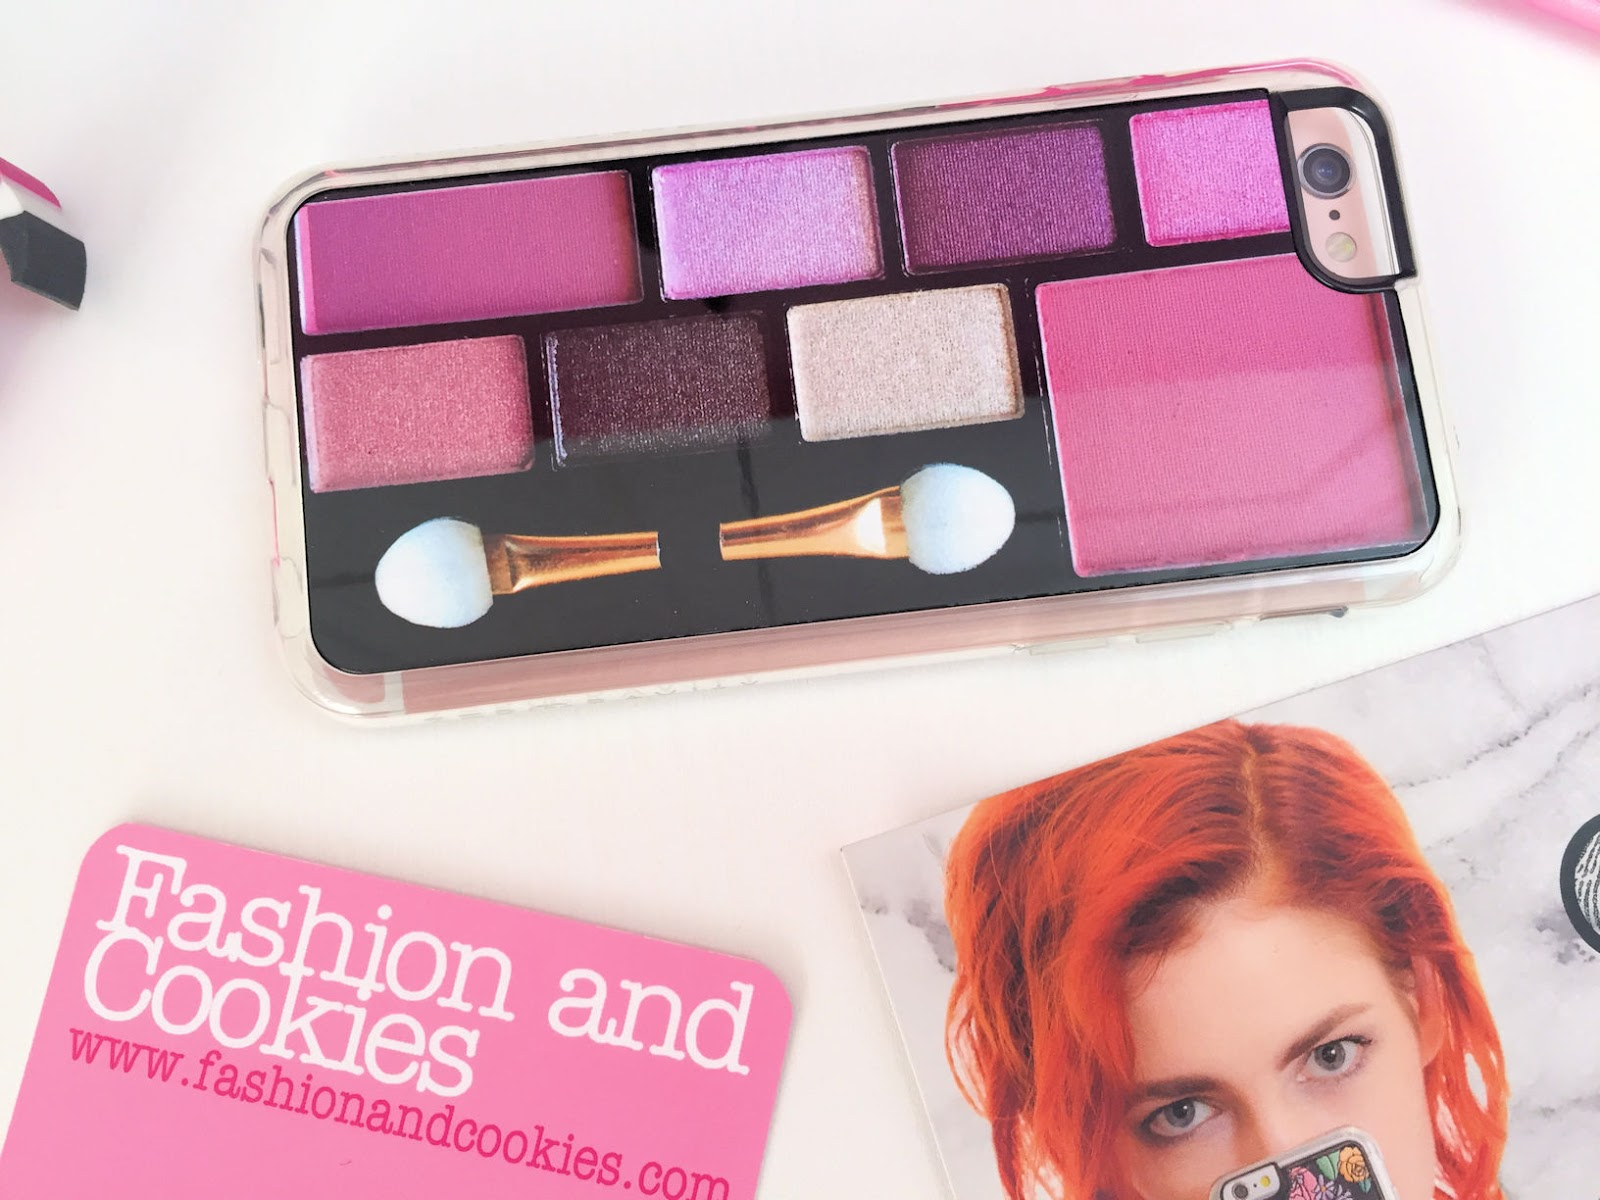 Zero Gravity iPhone 6 Compact makeup case on Fashion and Cookies fashion and beauty blog, fashion blogger